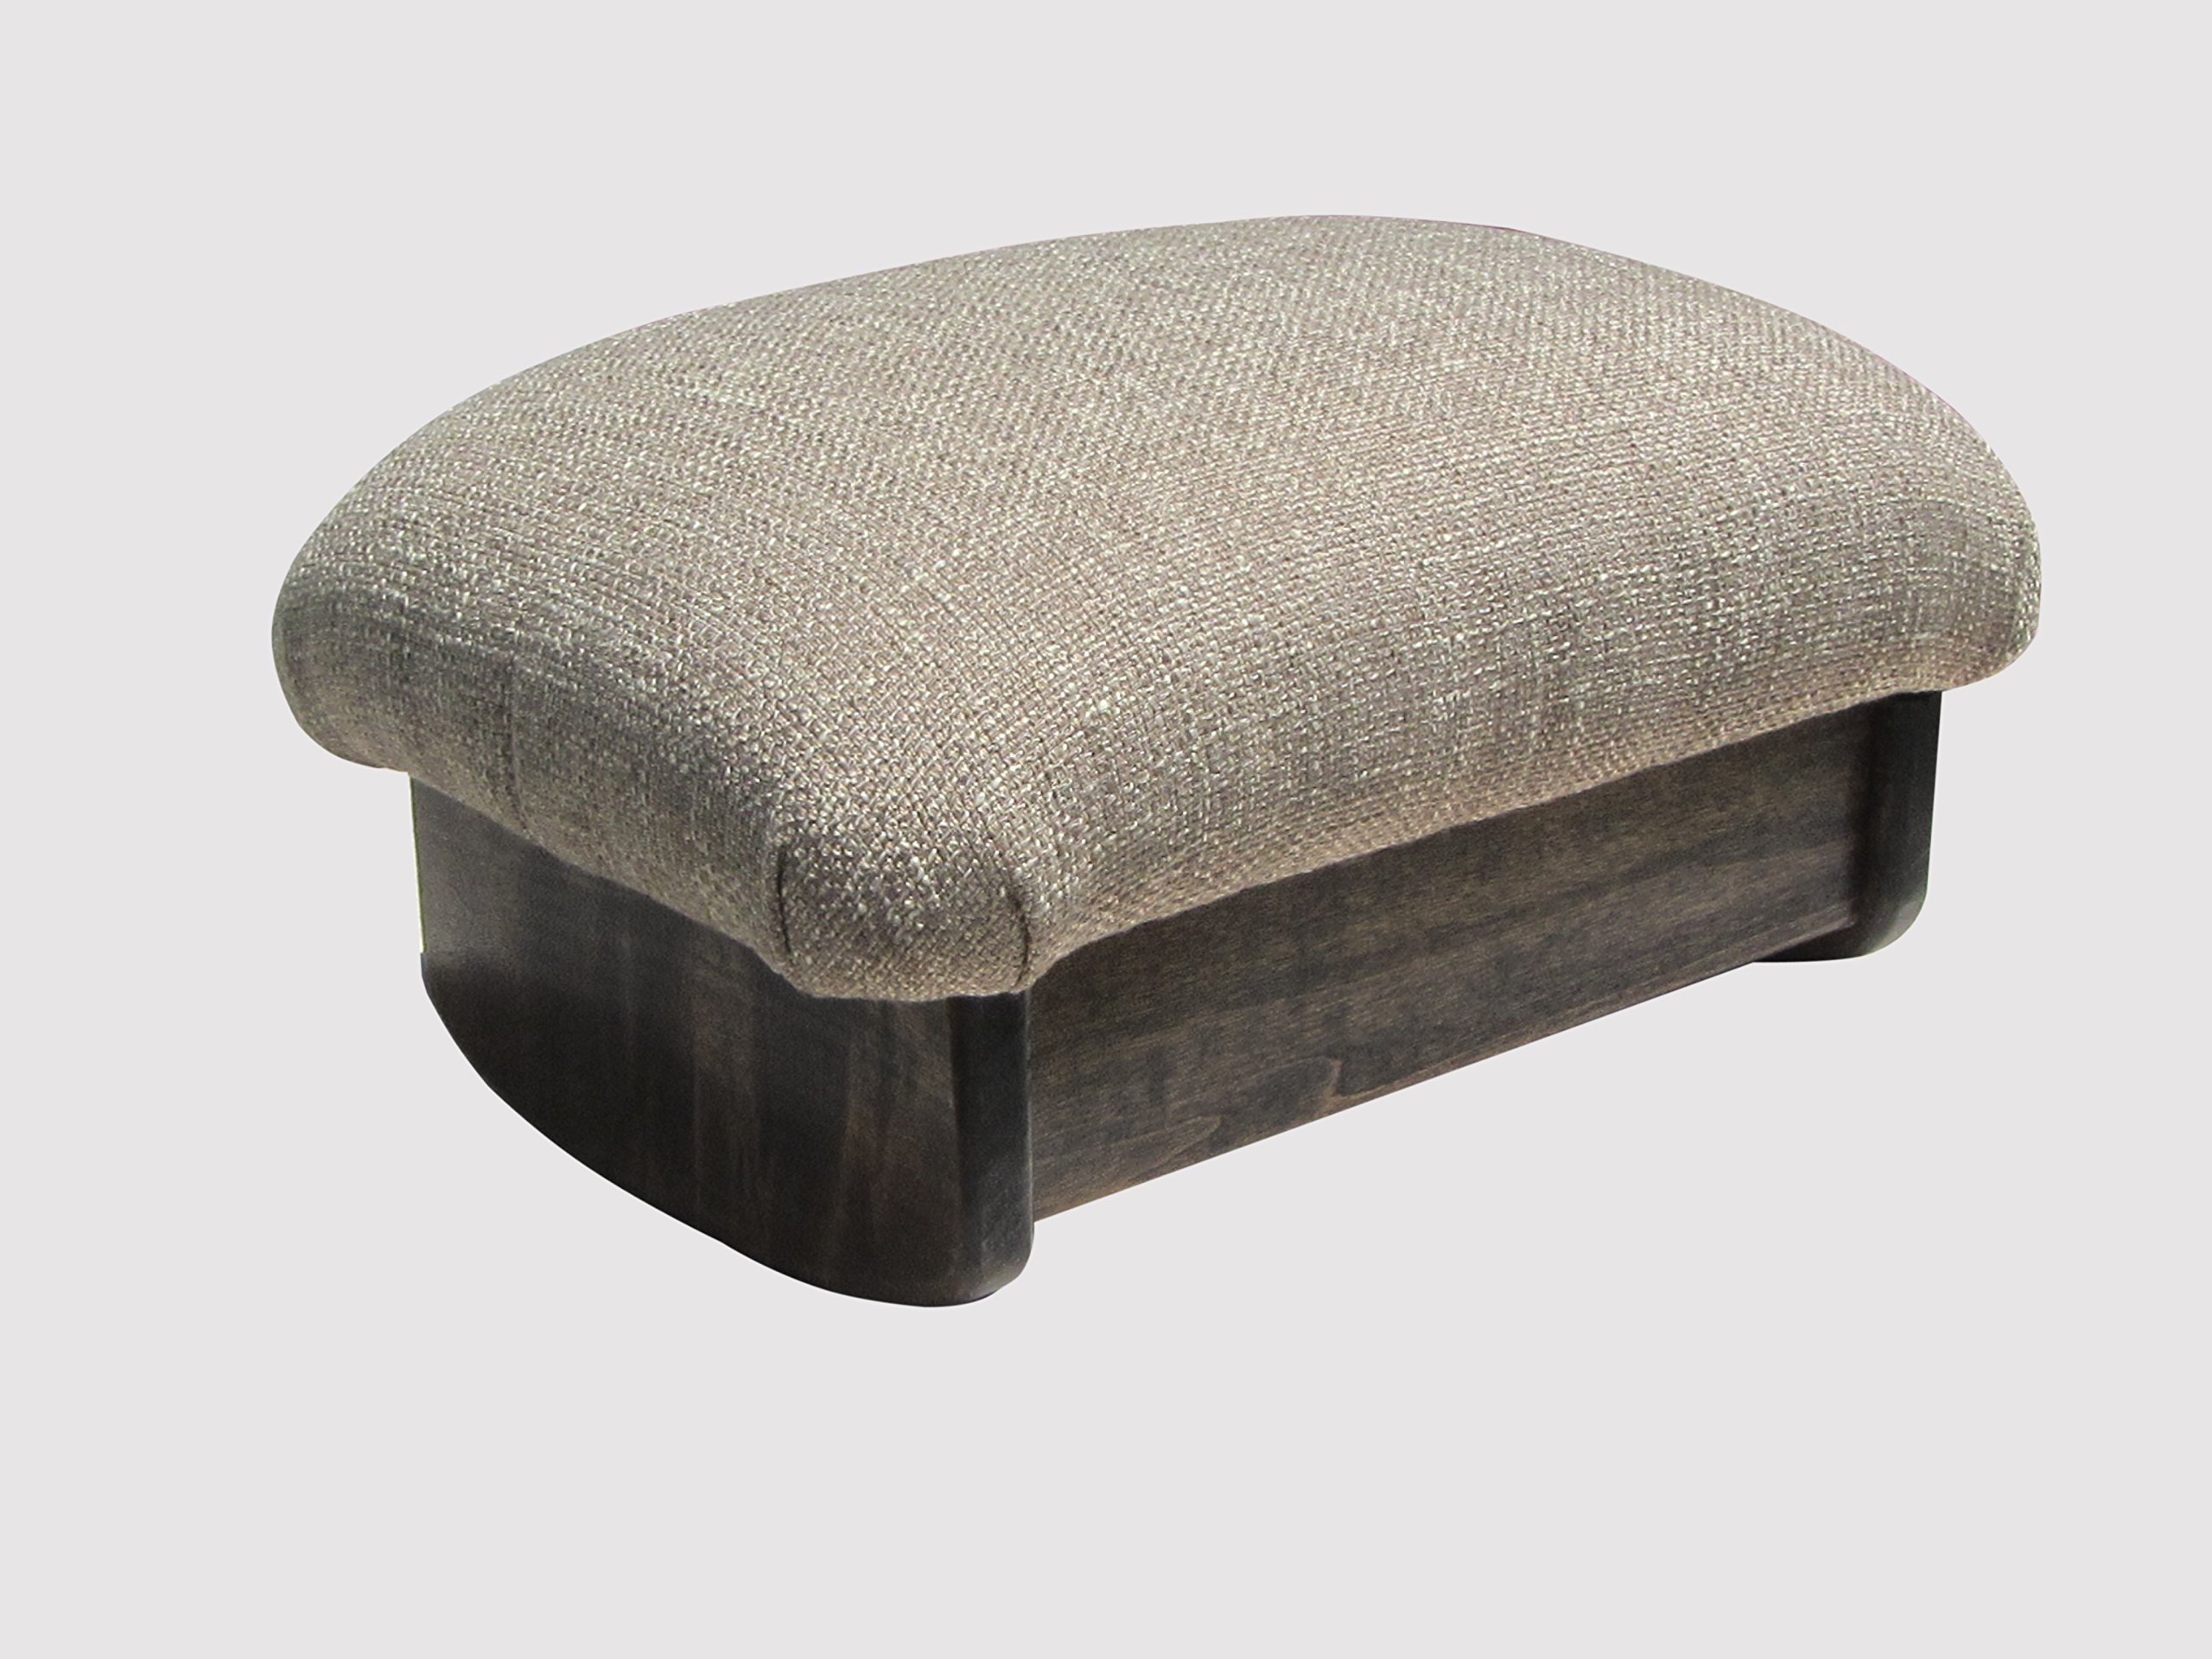 Rocking Padded Foot Stool 7'' Tall Walnut Stain (Made in the USA) (Desert Sand)